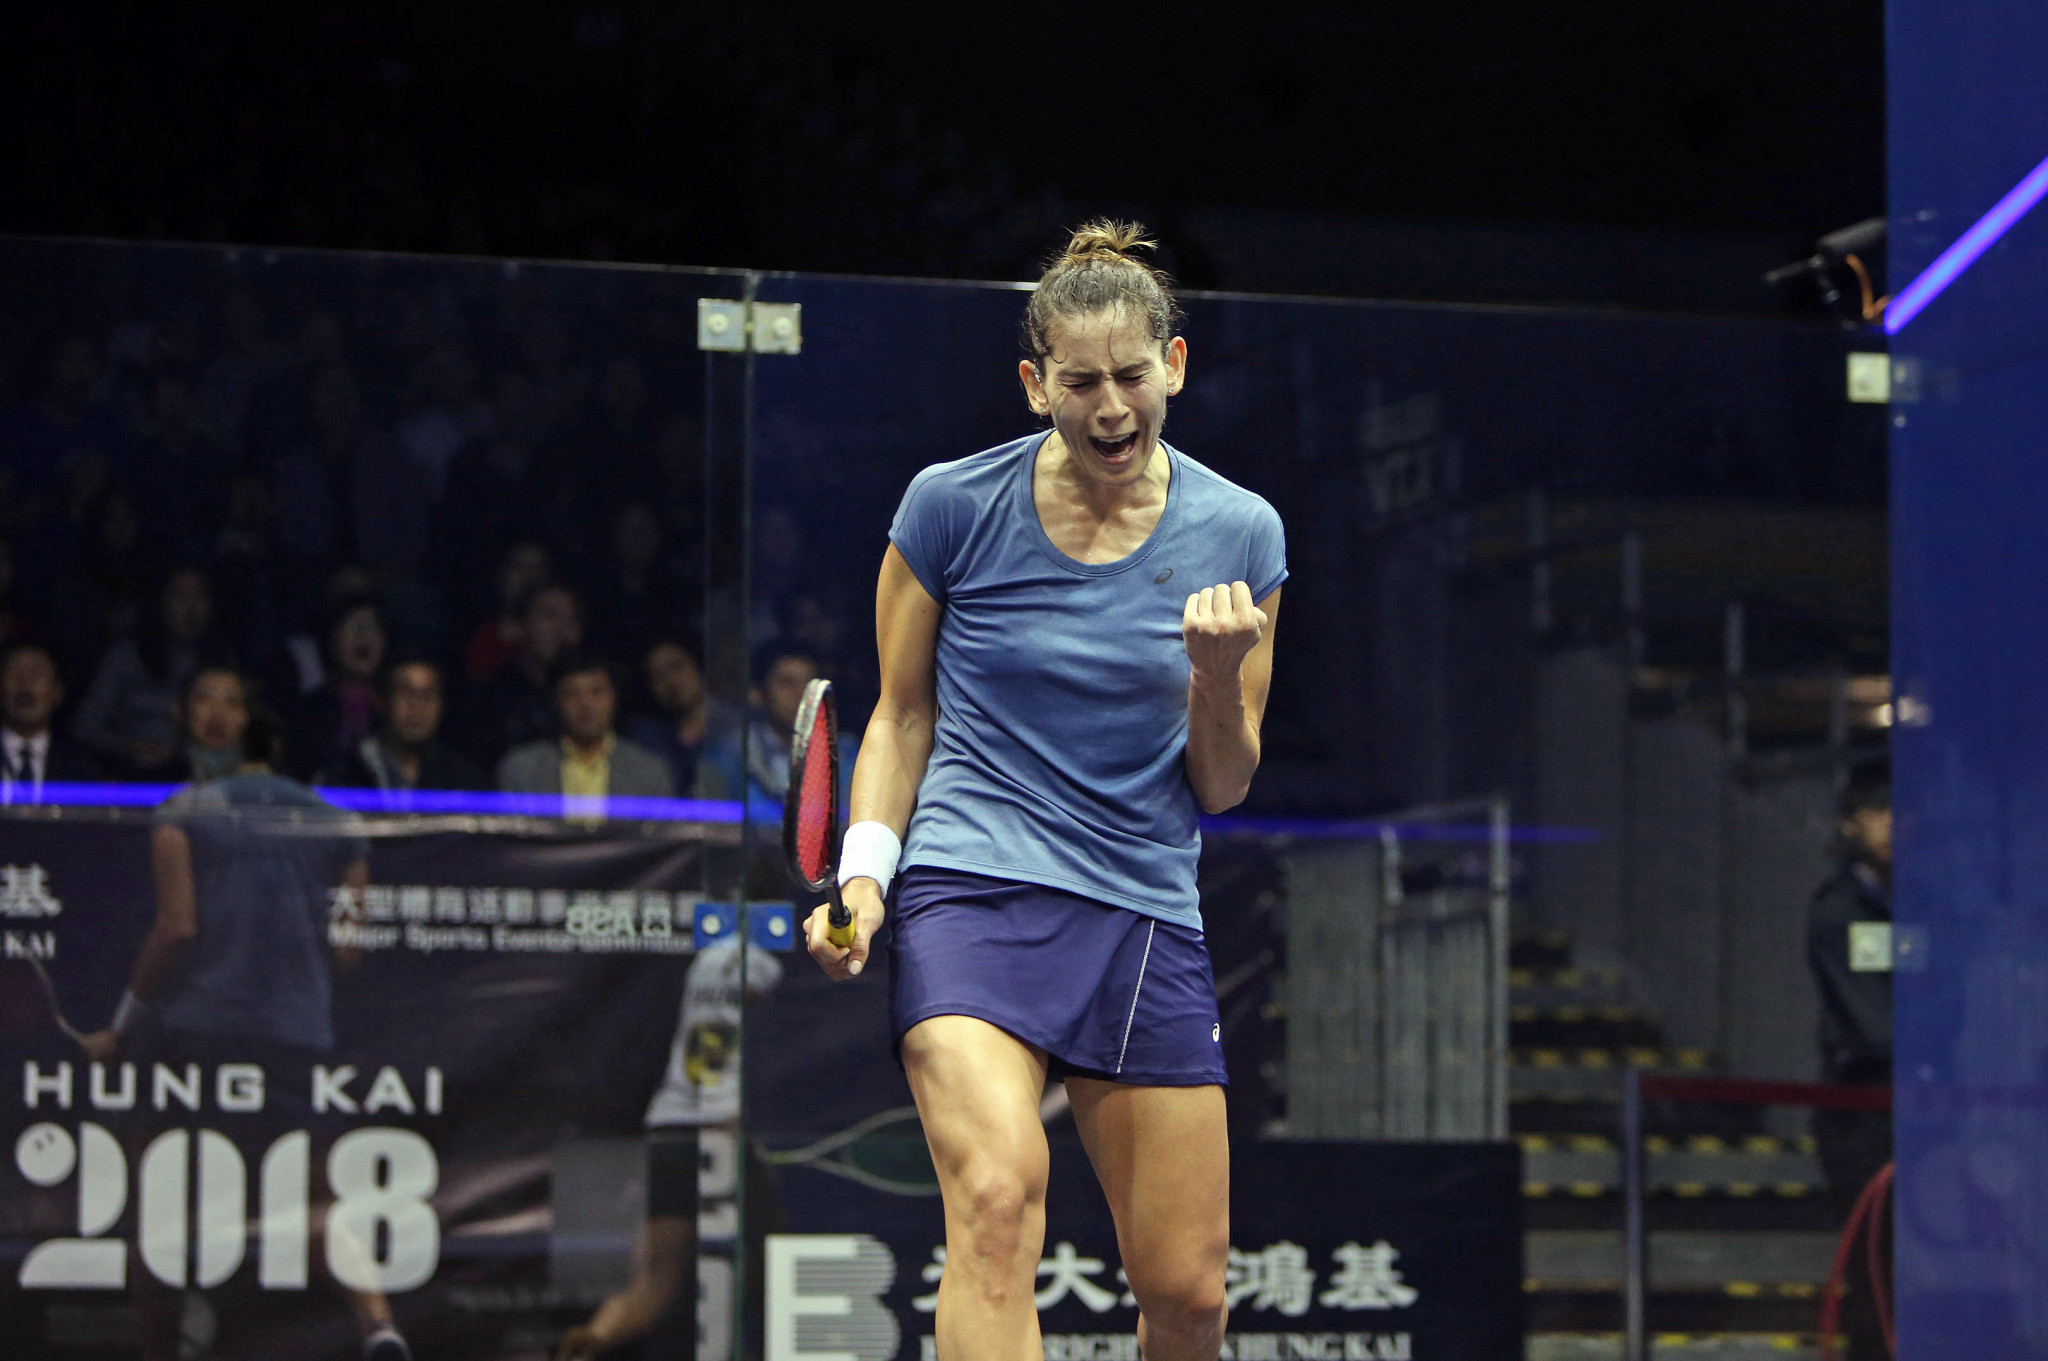 King defeats new world number one to claim first PSA Platinum World Tour title in Hong Kong